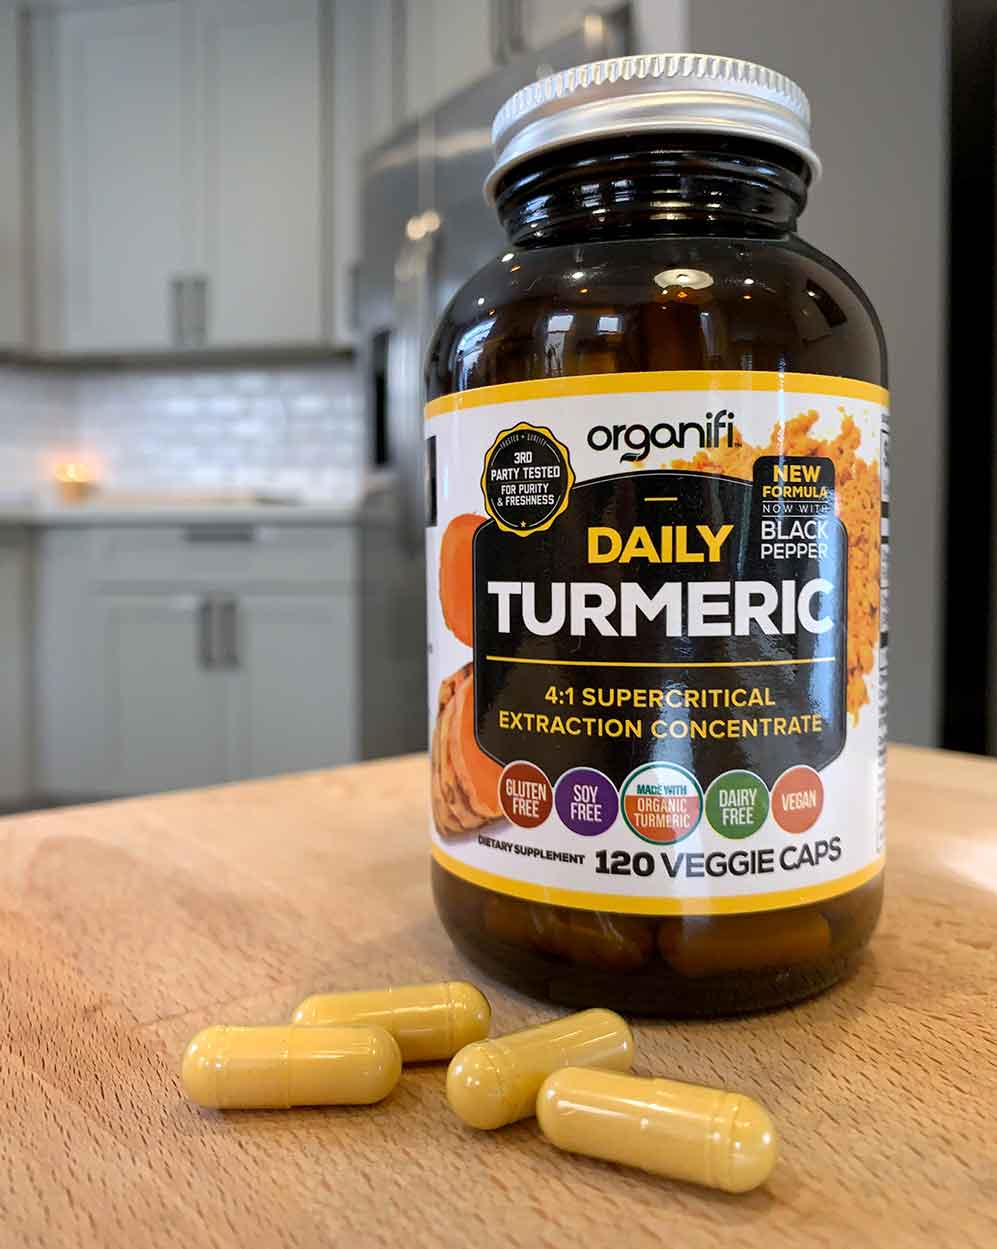 Daily Turmeric Pill Bottle with Pills